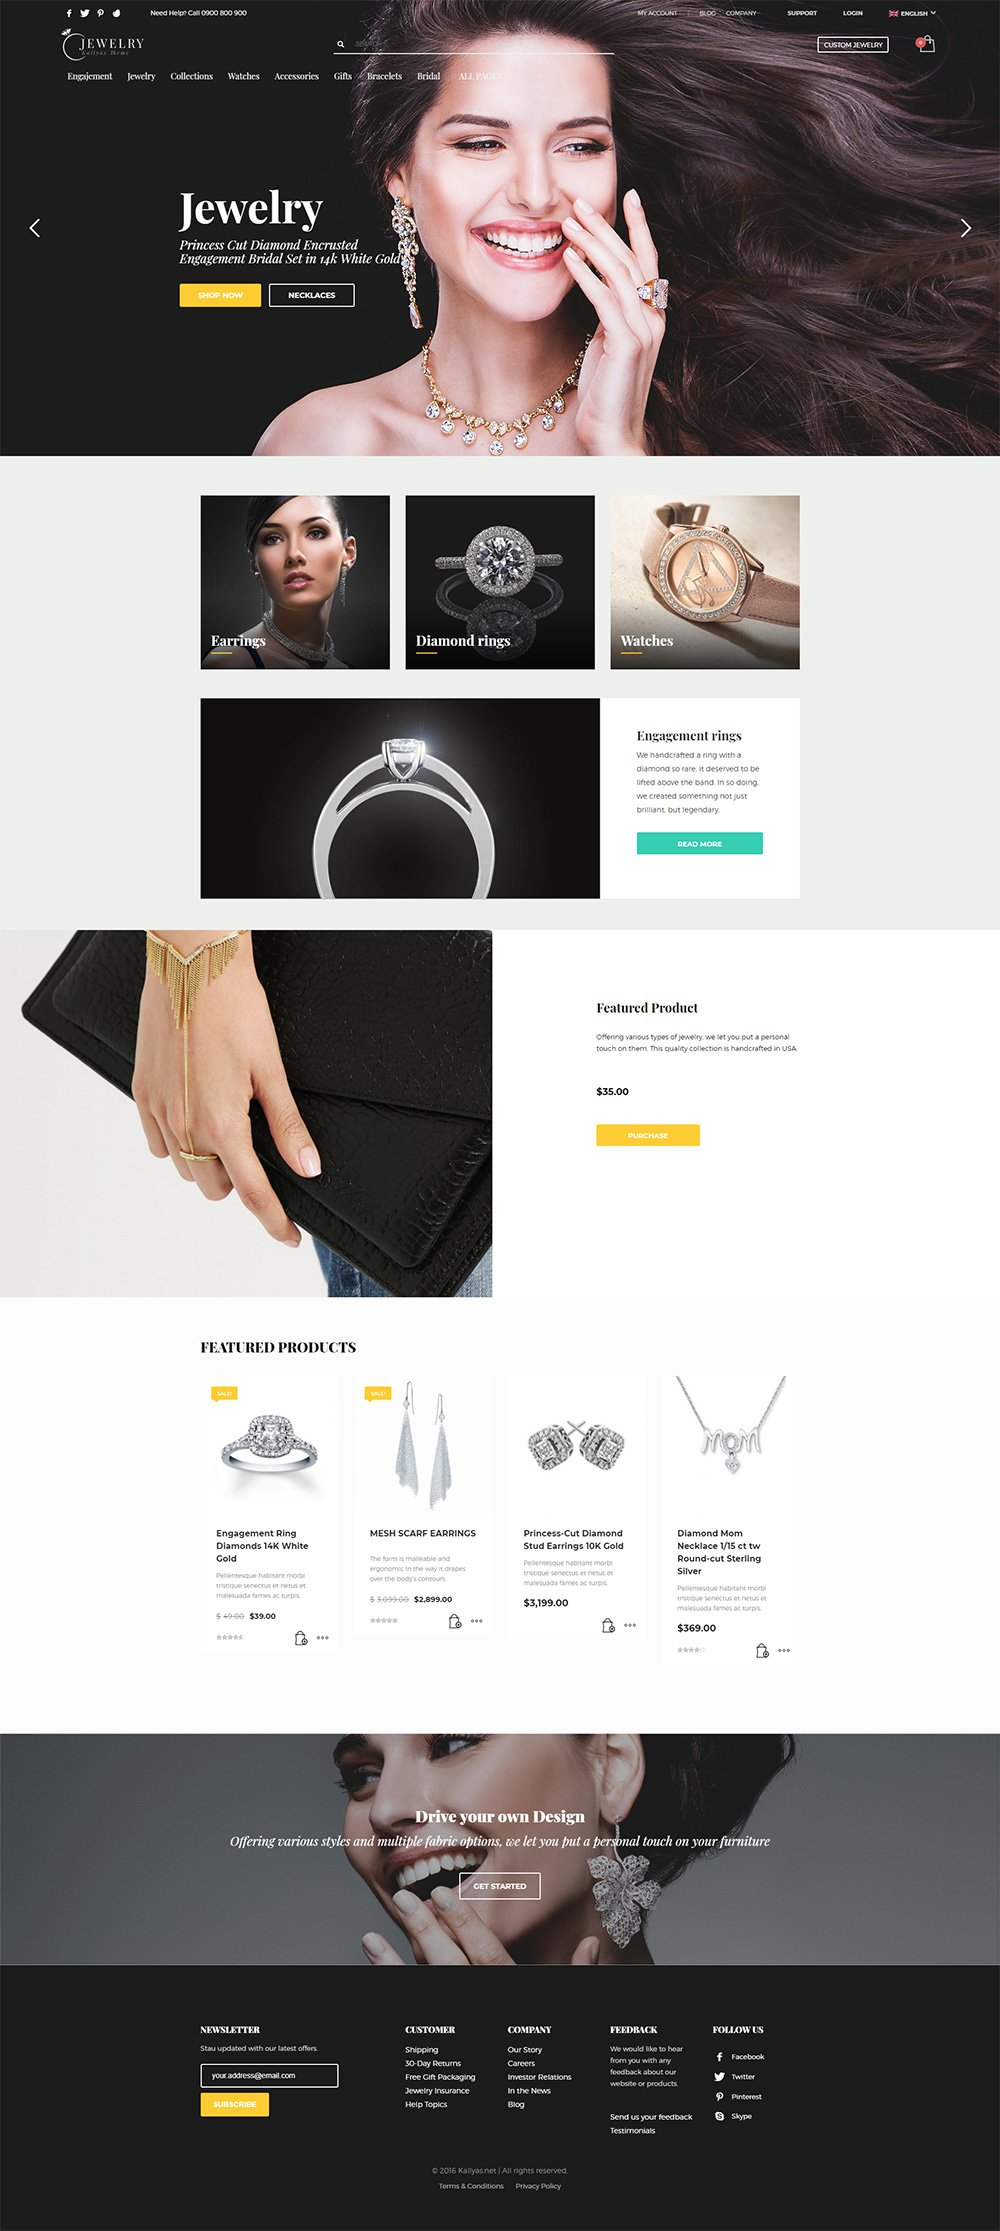 Jewelry - Free PSD Template